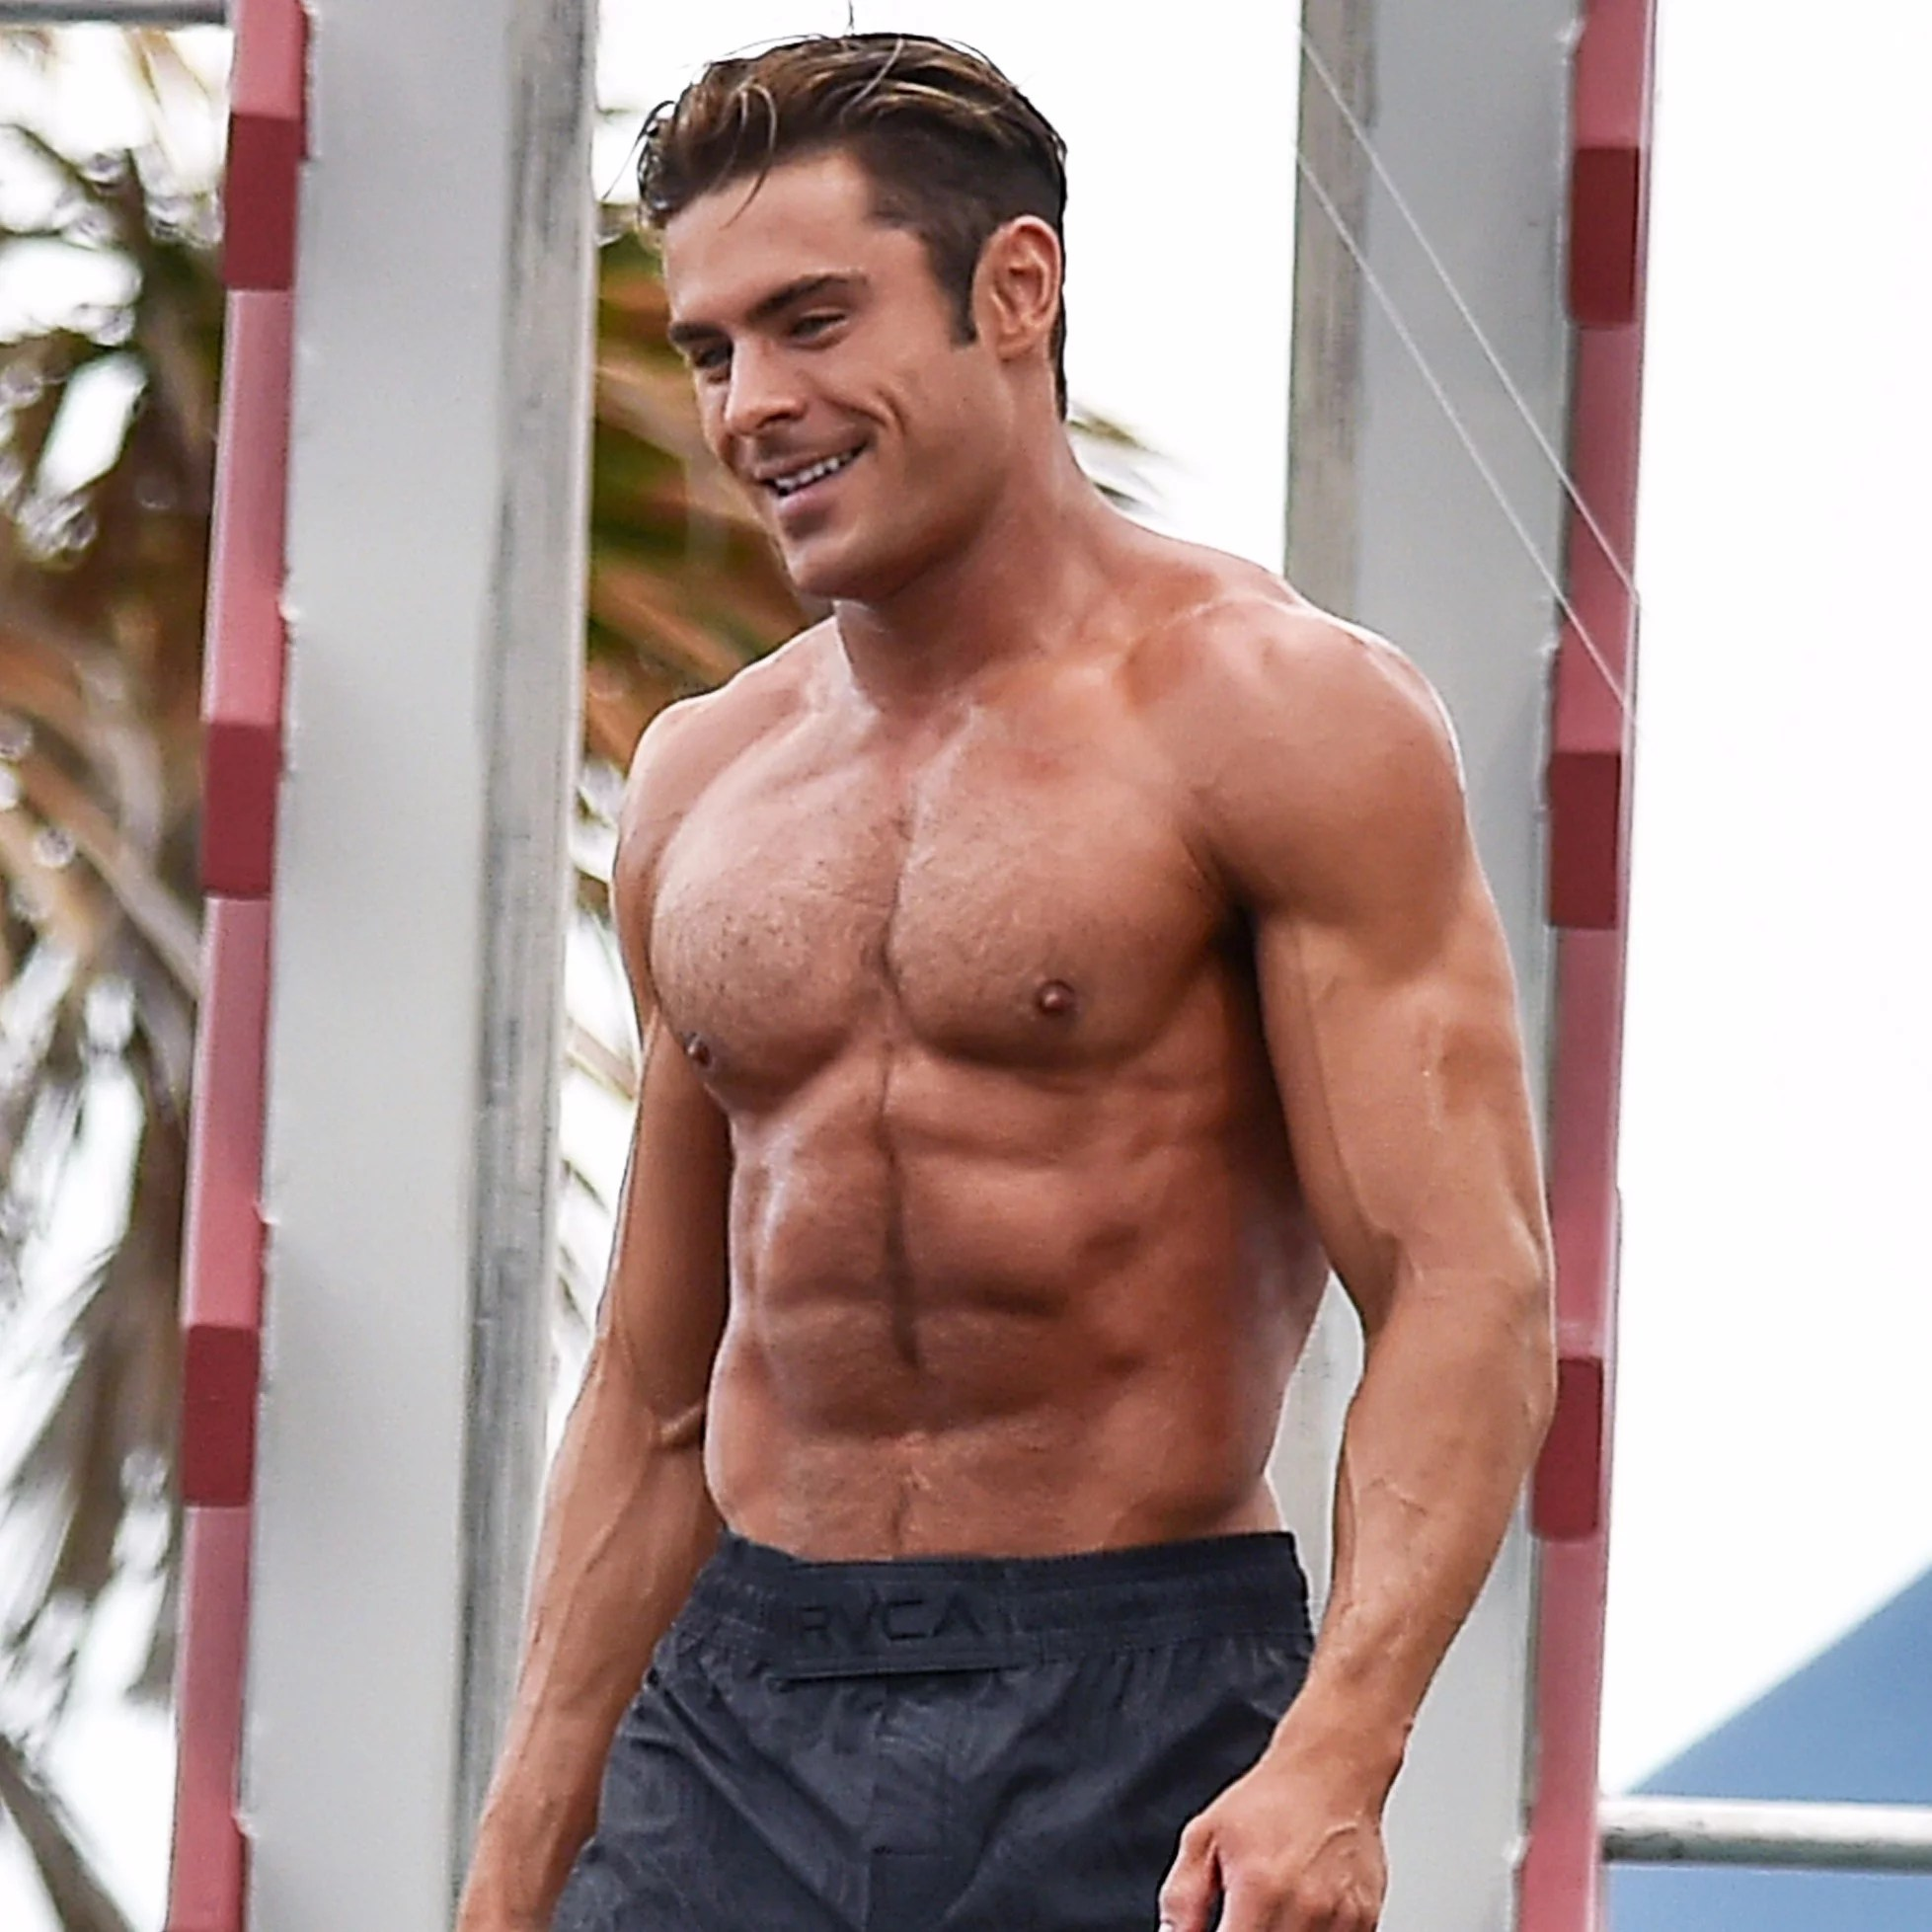 Zac Efron Shirtless   Pictures   POPSUGAR Celebrity